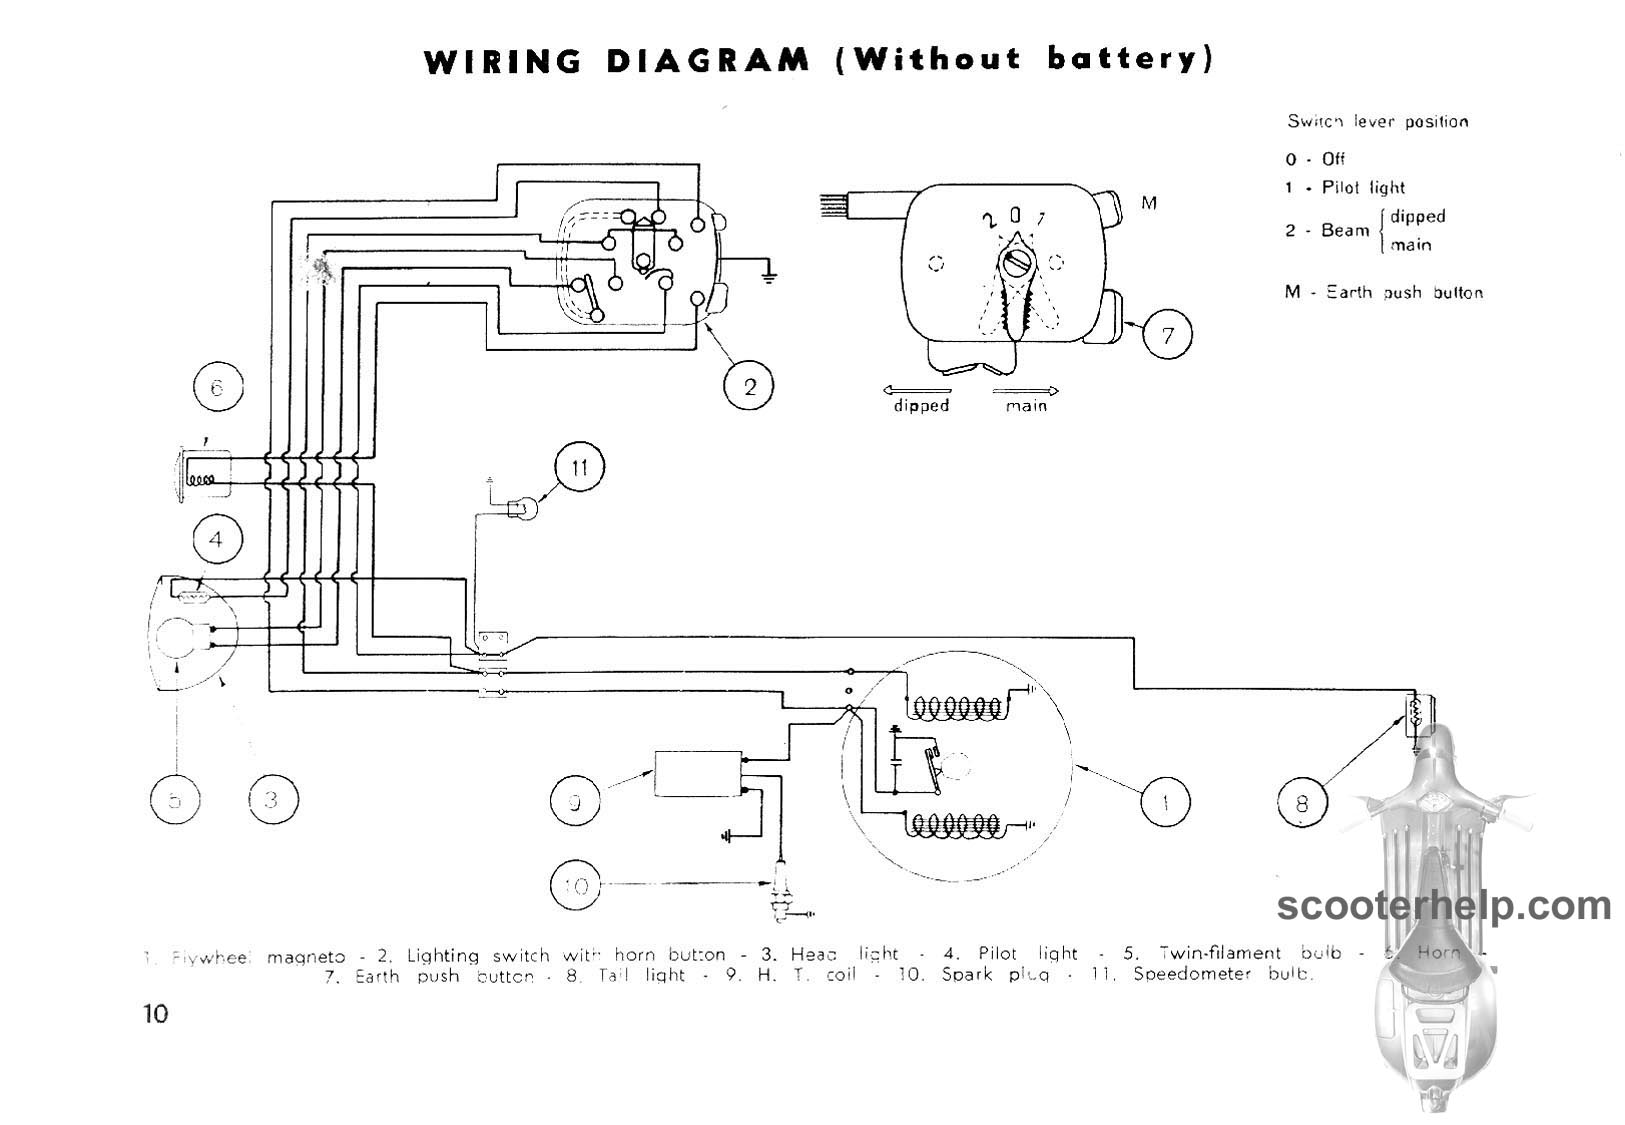 page10 lambretta 150 ld owner's manual lambretta wiring loom diagram at bakdesigns.co